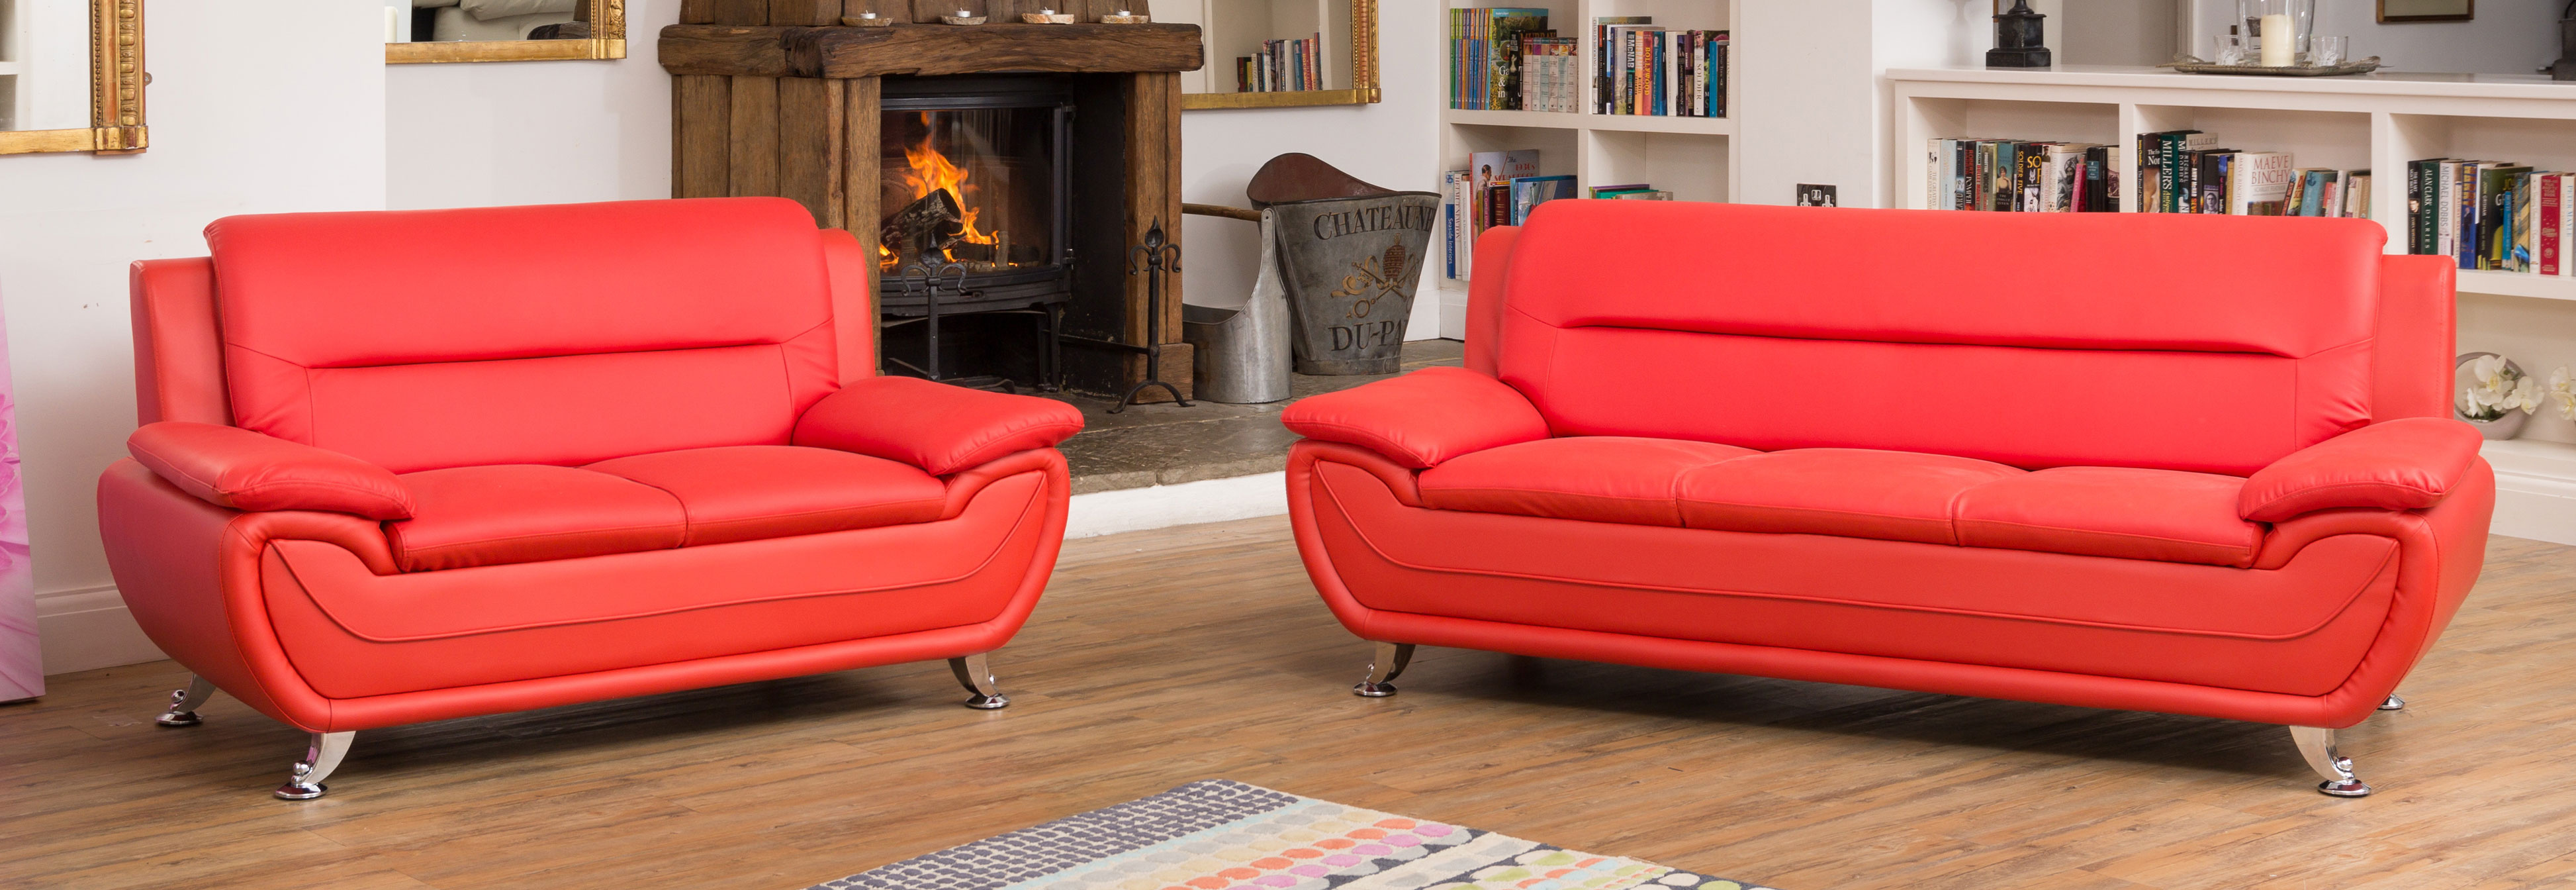 Gresham Suite red